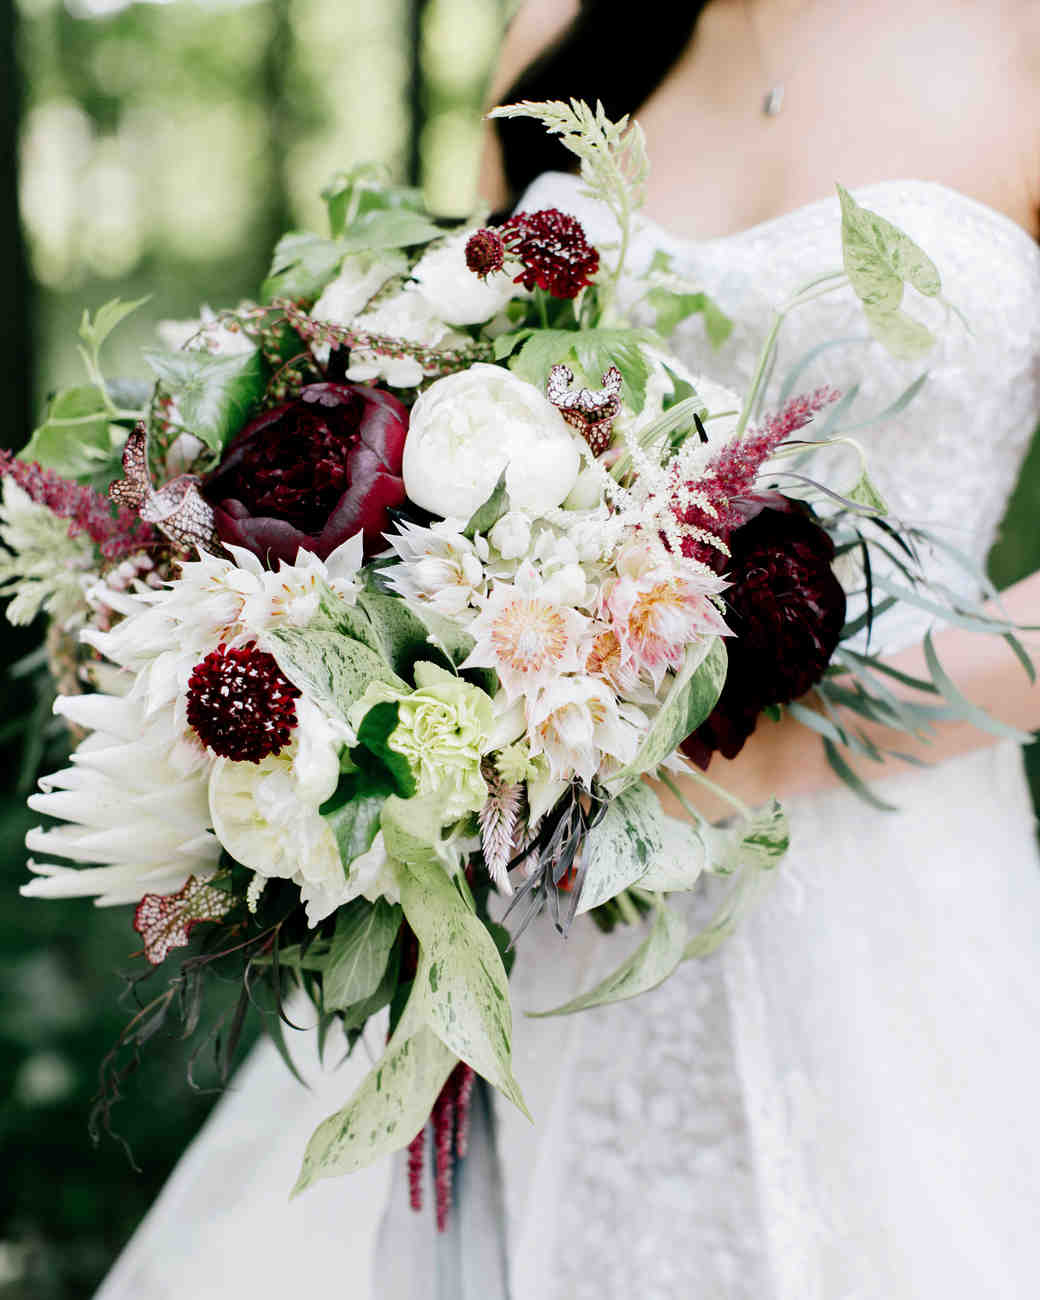 Wedding Flower Trends That Will Be Big This Year